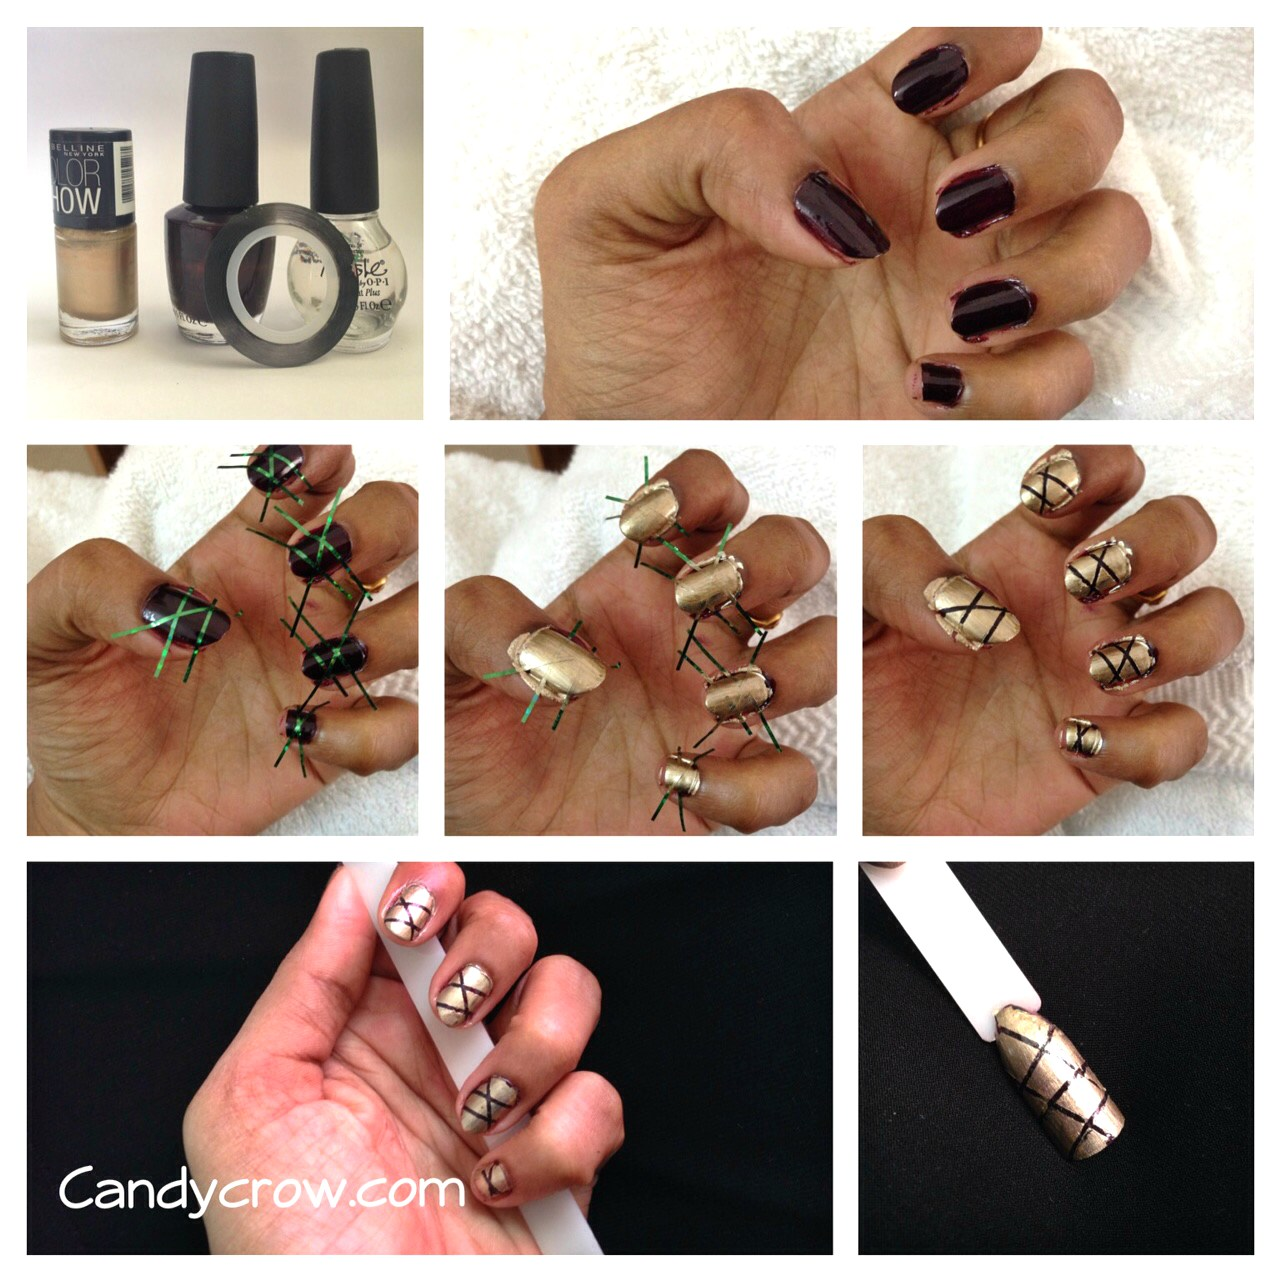 Easy Nail Art Tutorial With Stripping Nail Tape - Candy Crow